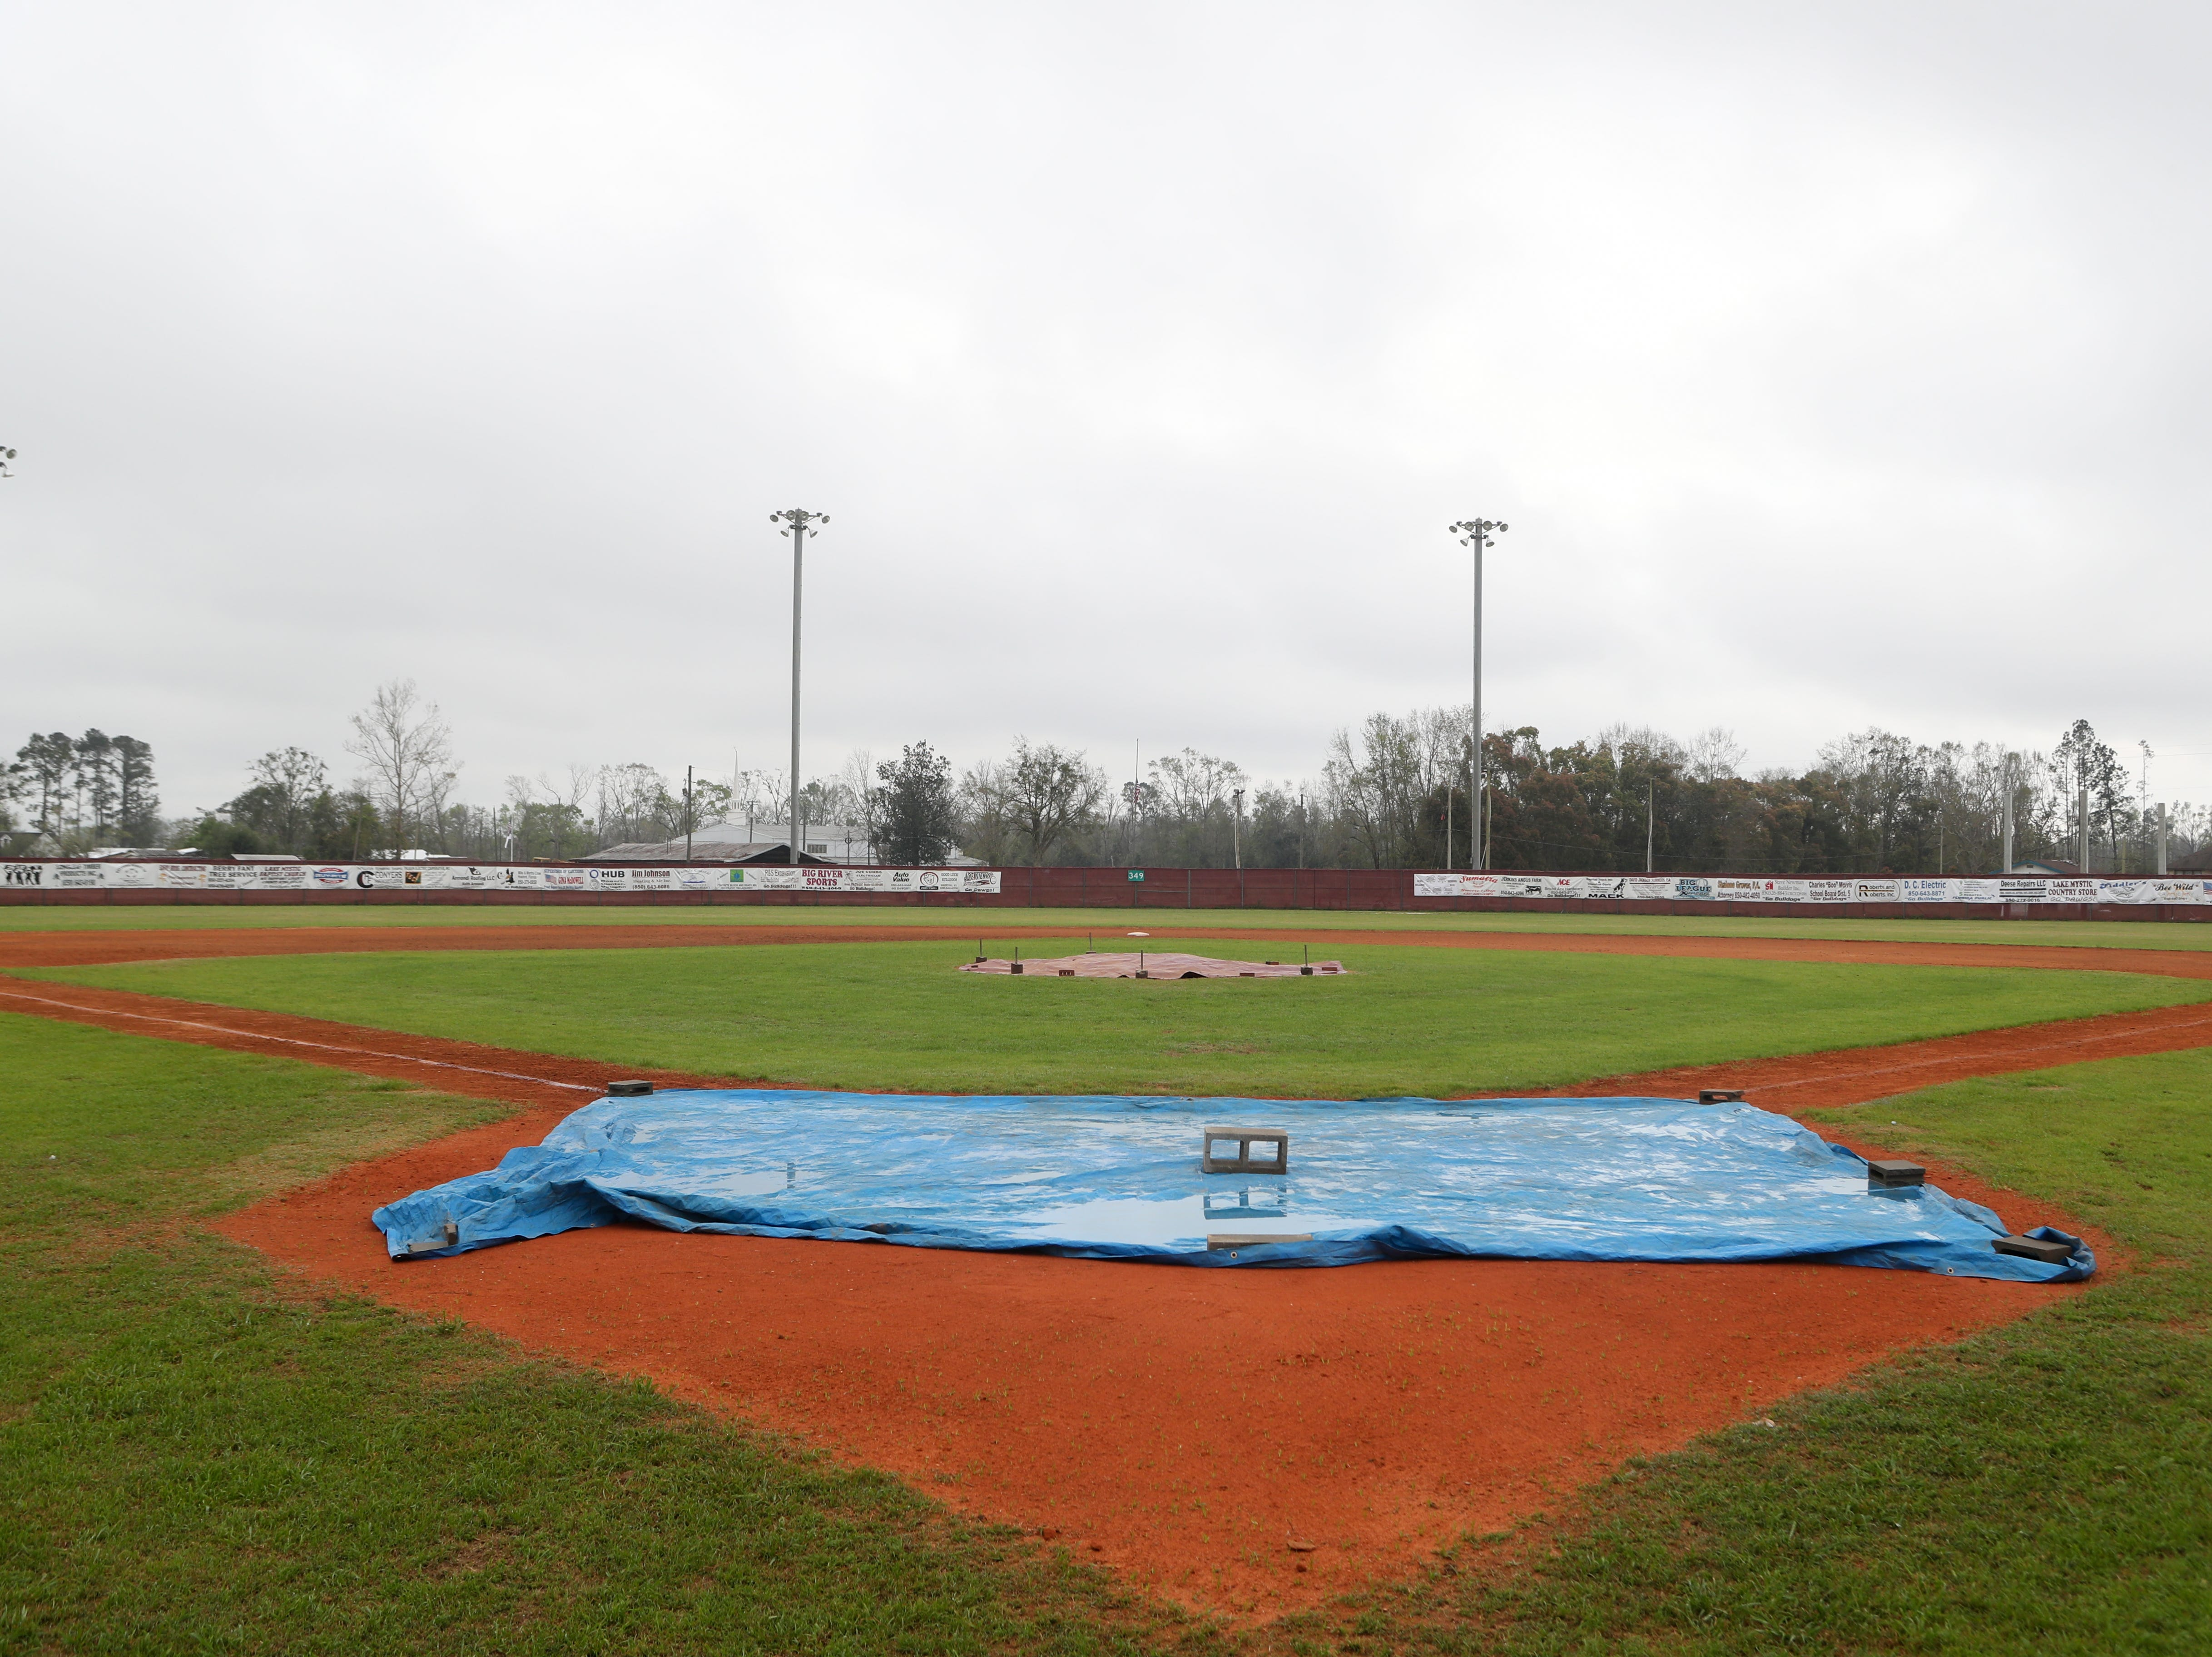 Clouds and fog loom over the Liberty County High School baseball field Monday afternoon, just 24 hours after Corey Crum, head baseball coach and his wife Shana Crum, died after being electrocuted while working at the field Sunday, March 10, 2019.